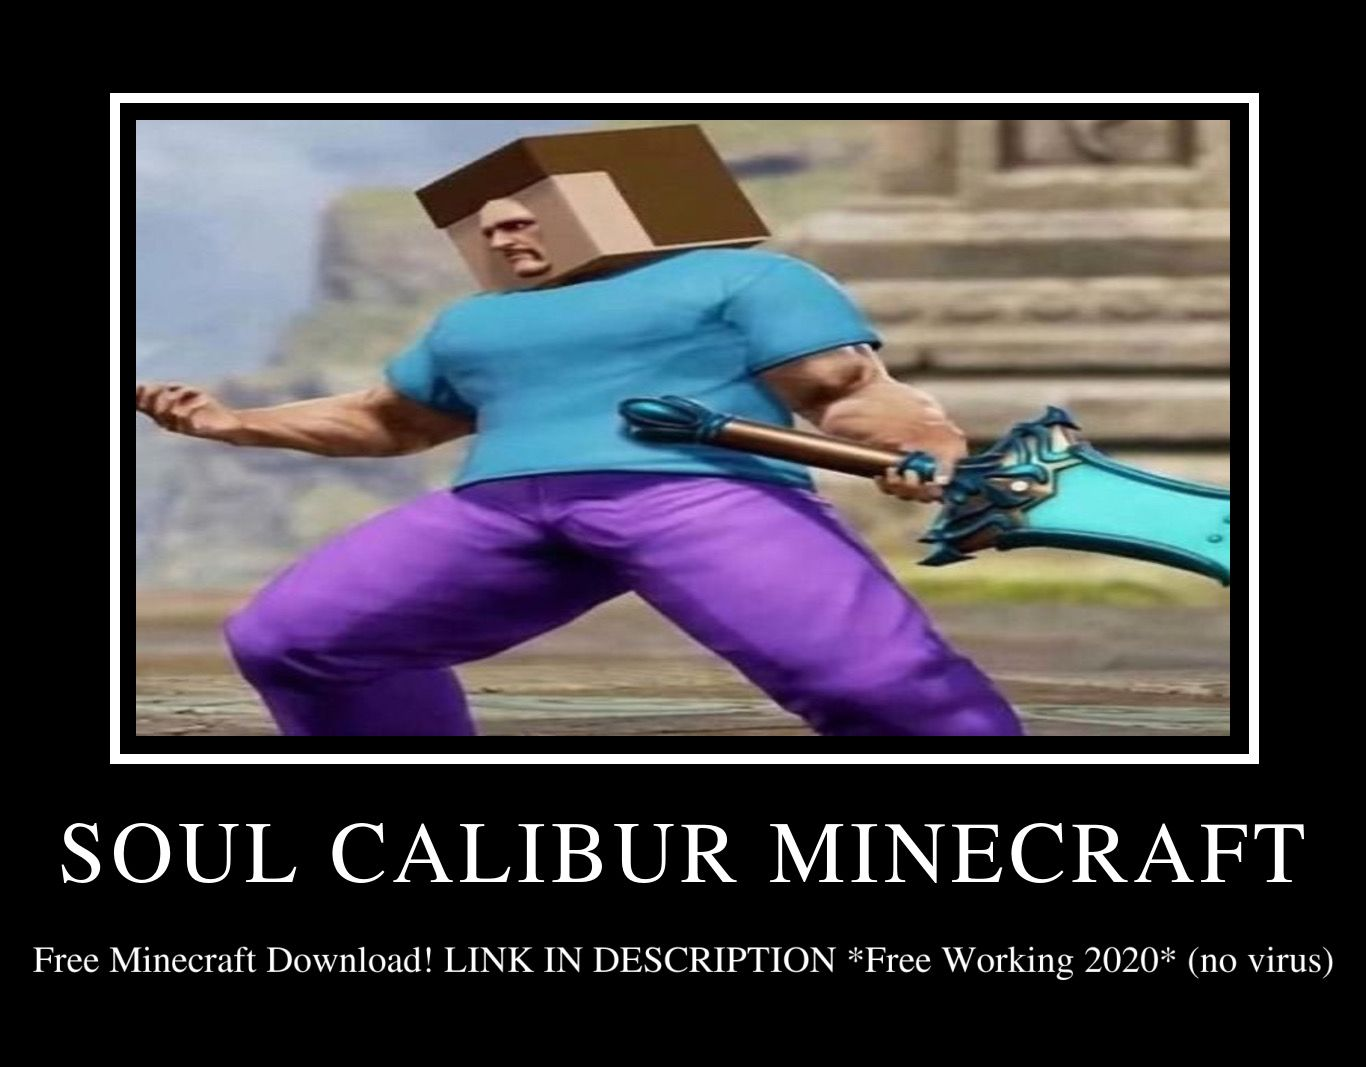 The Bot Is Back This Meme Was Created By An Ai Credit To Uhtred 9007 On Discord Memes What Have You Done Soul Calibur